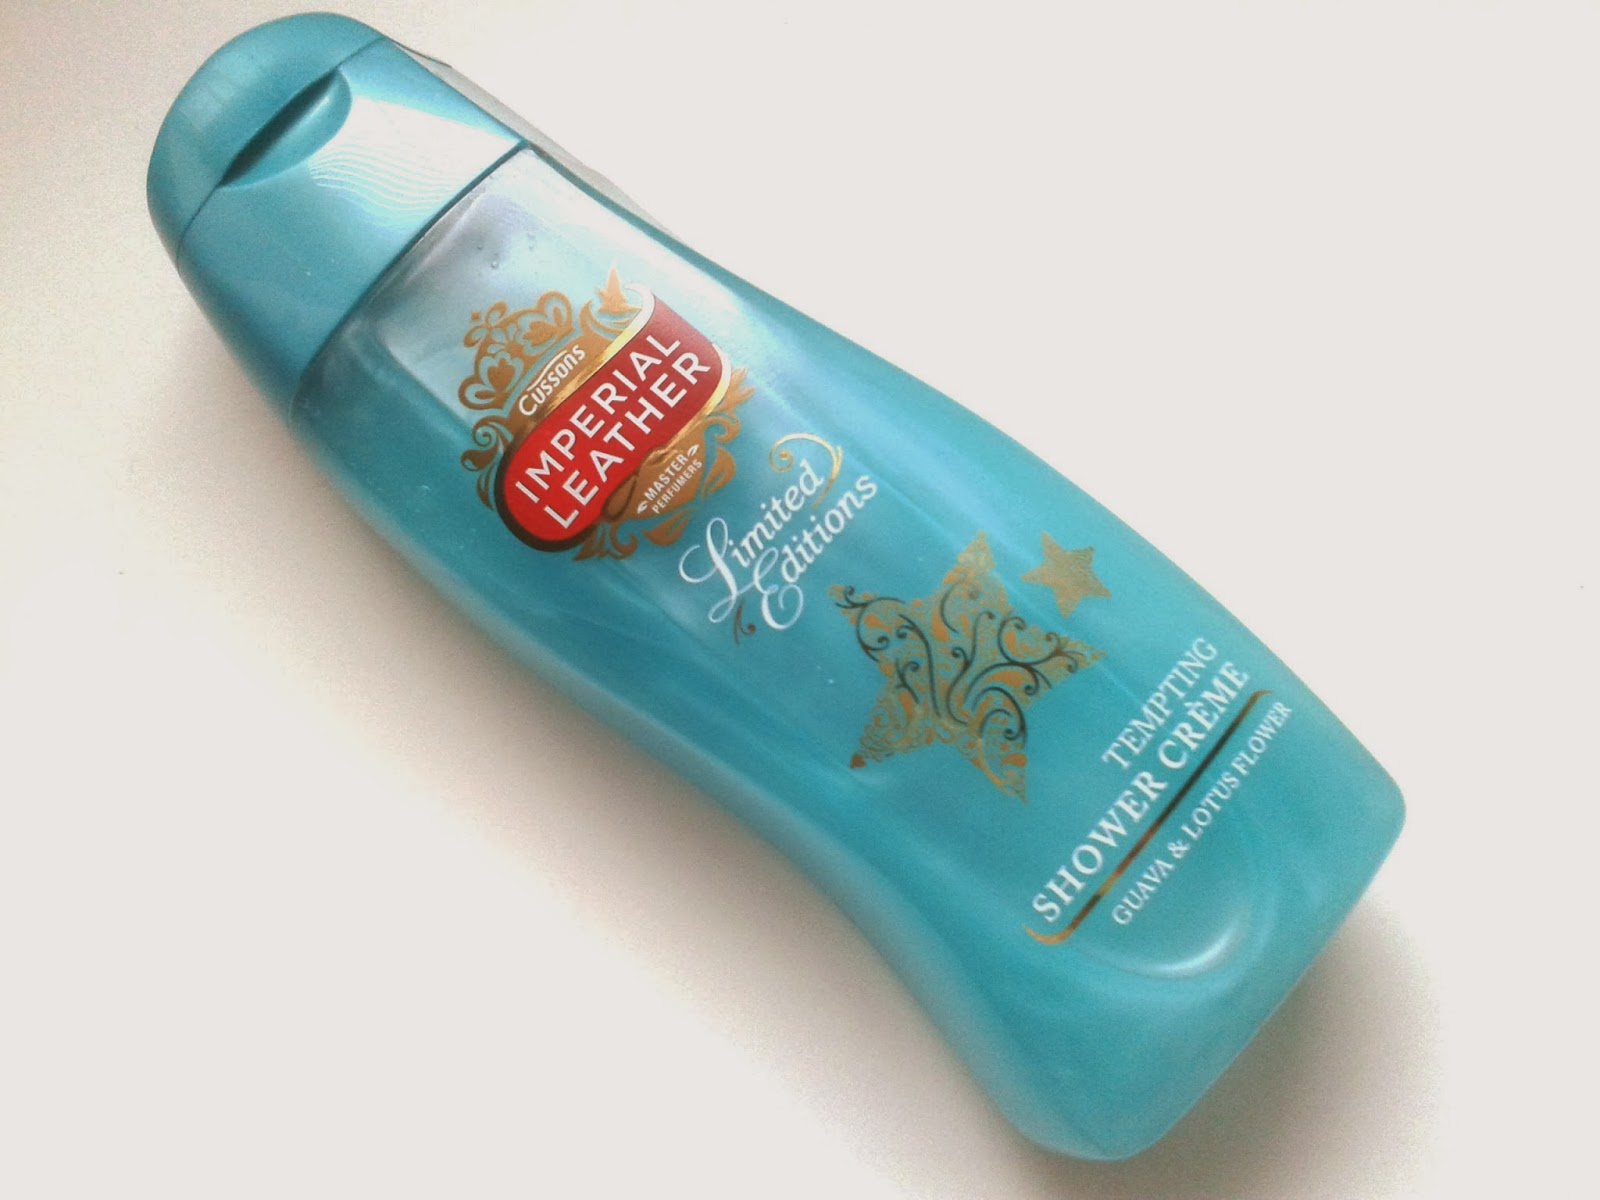 Imperial Leather Limited Edition Guava Lotus Flower Tempting Body Soap Stroll Down The Aisles In My Local Supermarket Earlier Week And Stumbled Across Shower Gel Section As You Do Have Long